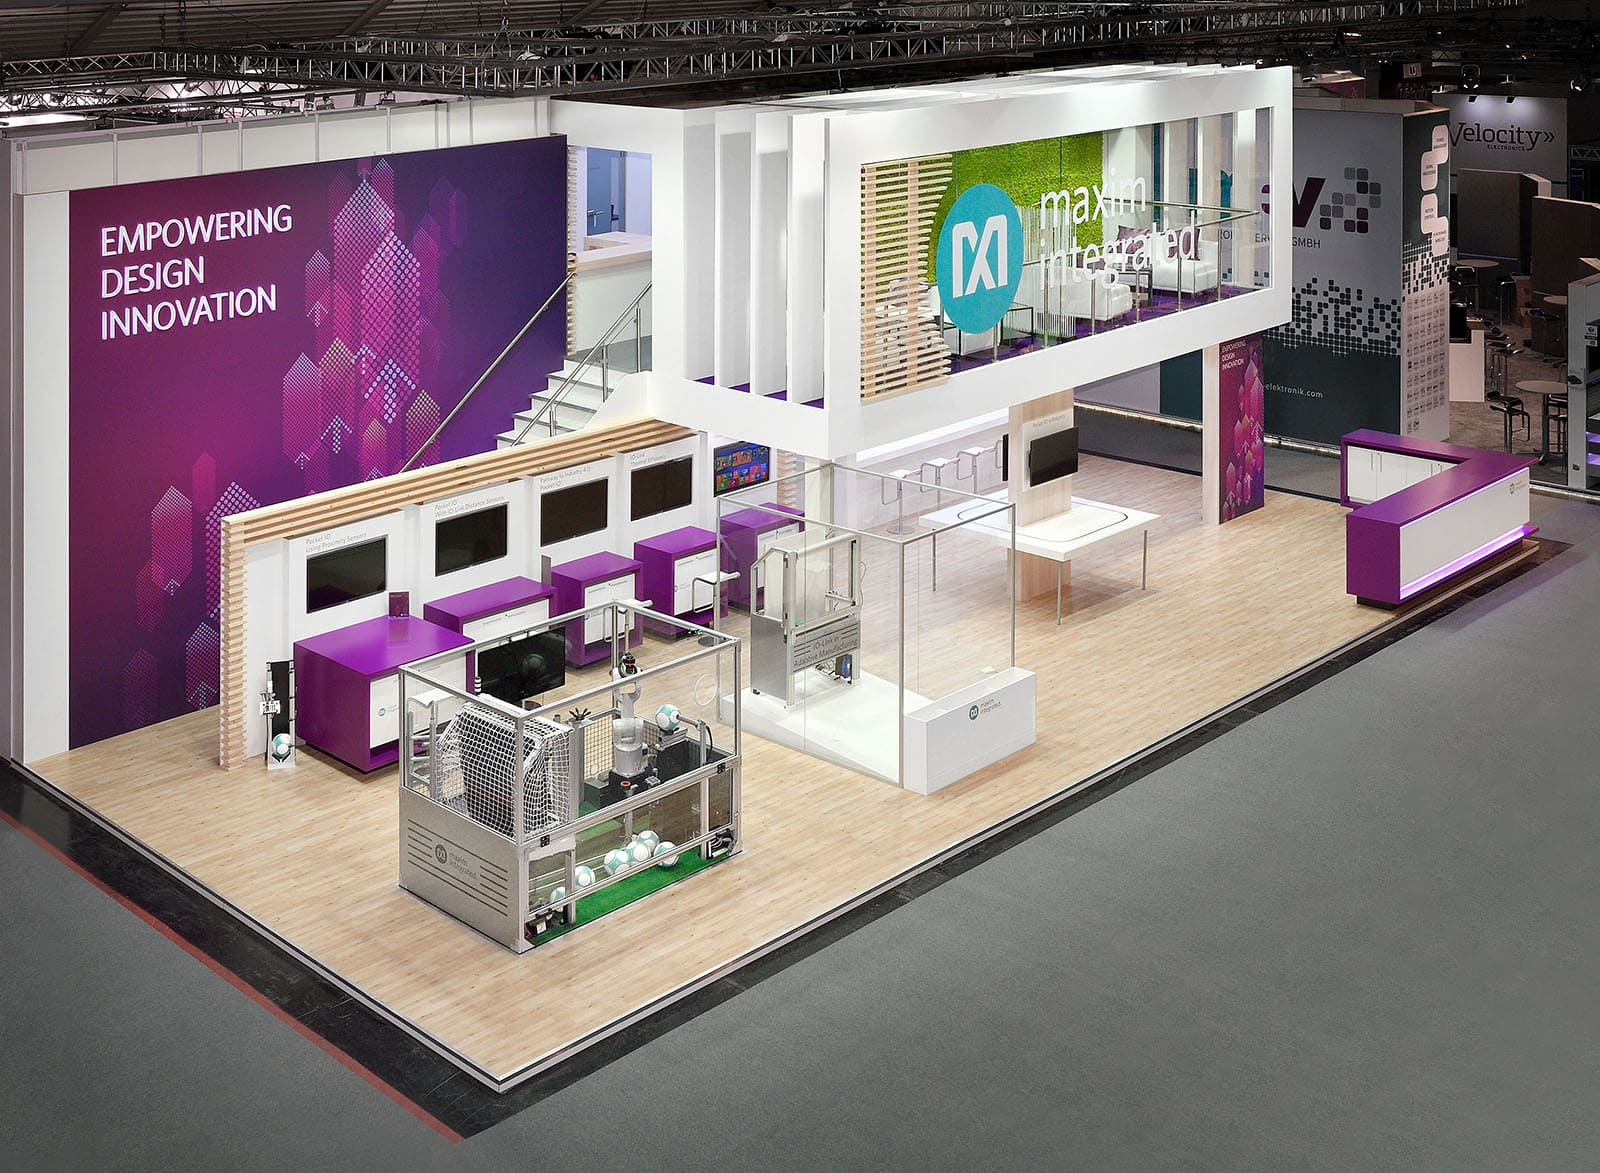 Maxim Trade Show Exhibition Stand by Nebula Exhibits